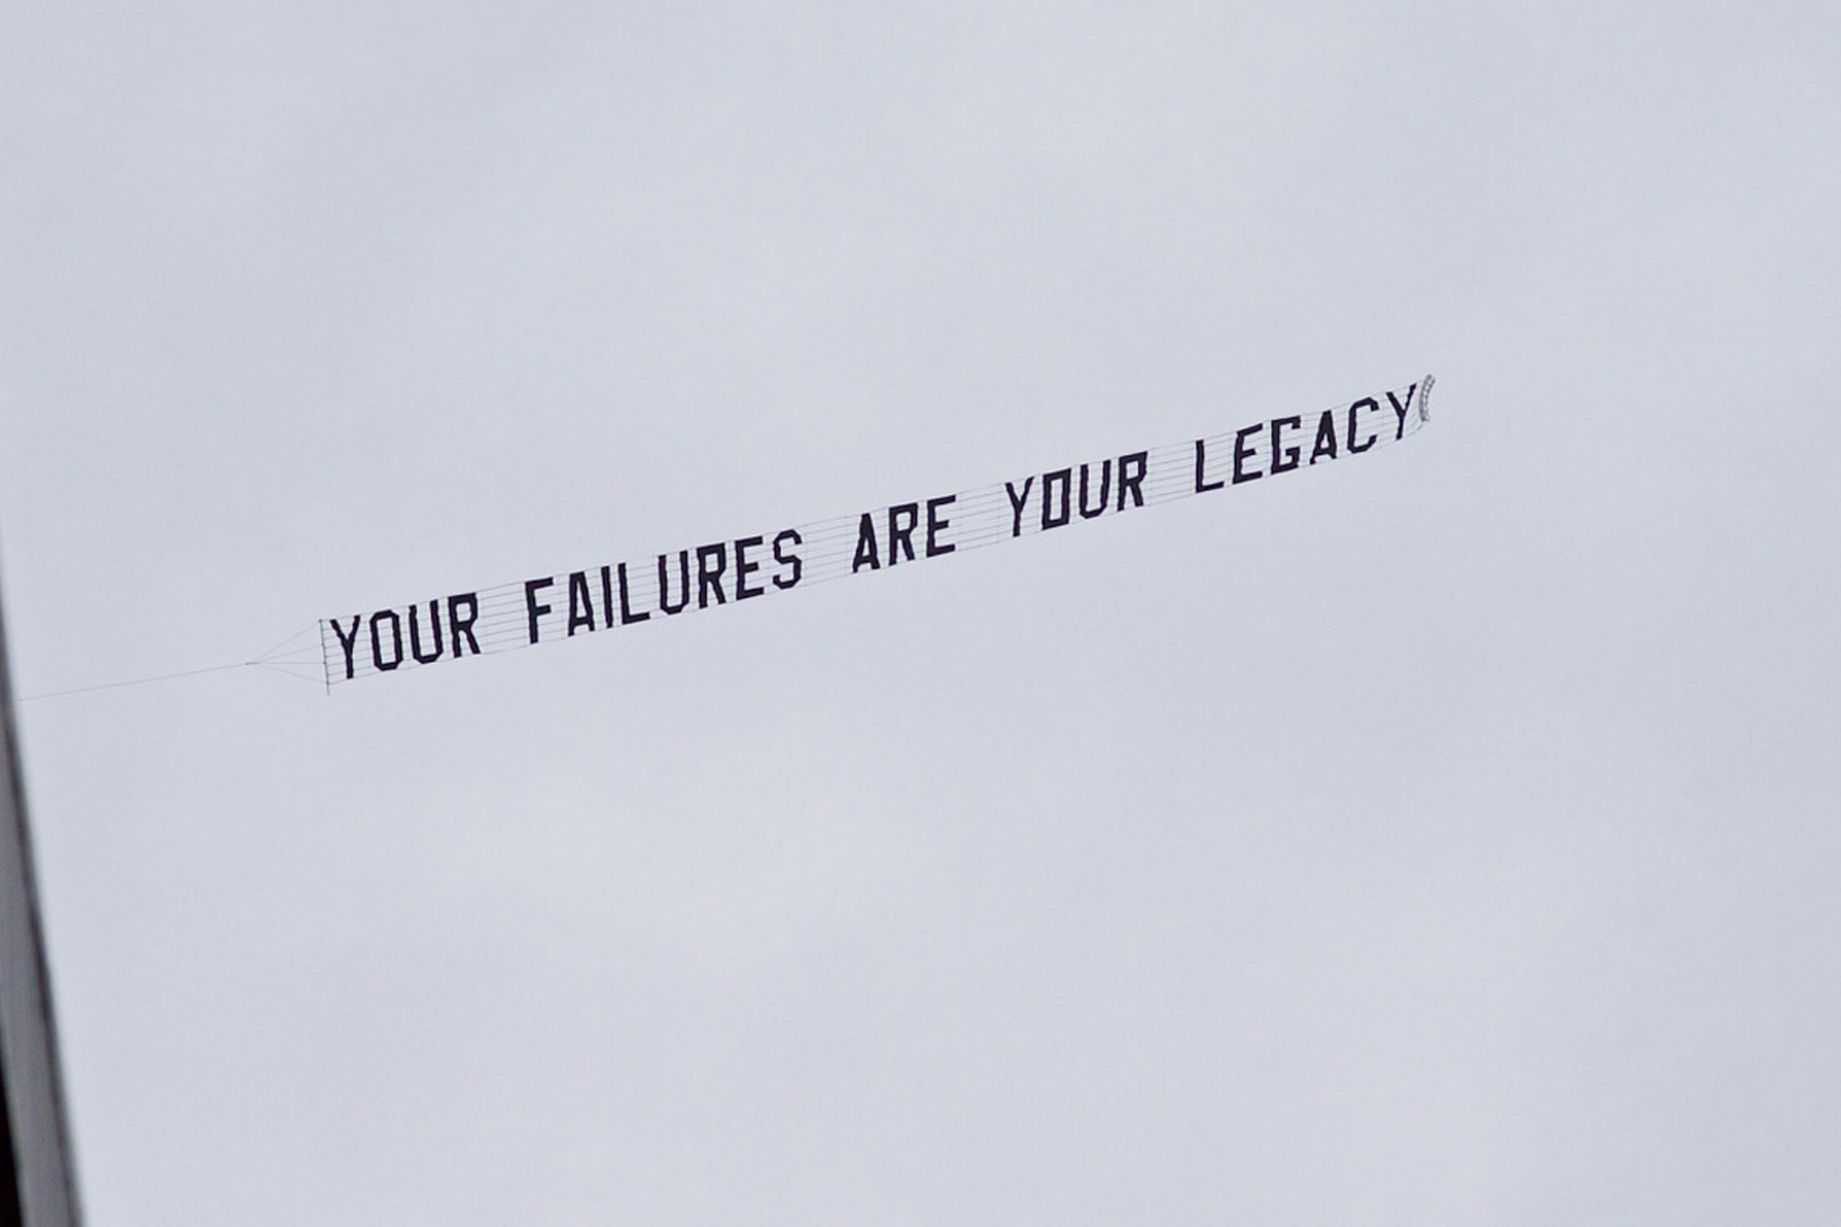 PAY-Your-Failures-Are-Your-Legacy-banner-at-Everton-vs-Chelsea